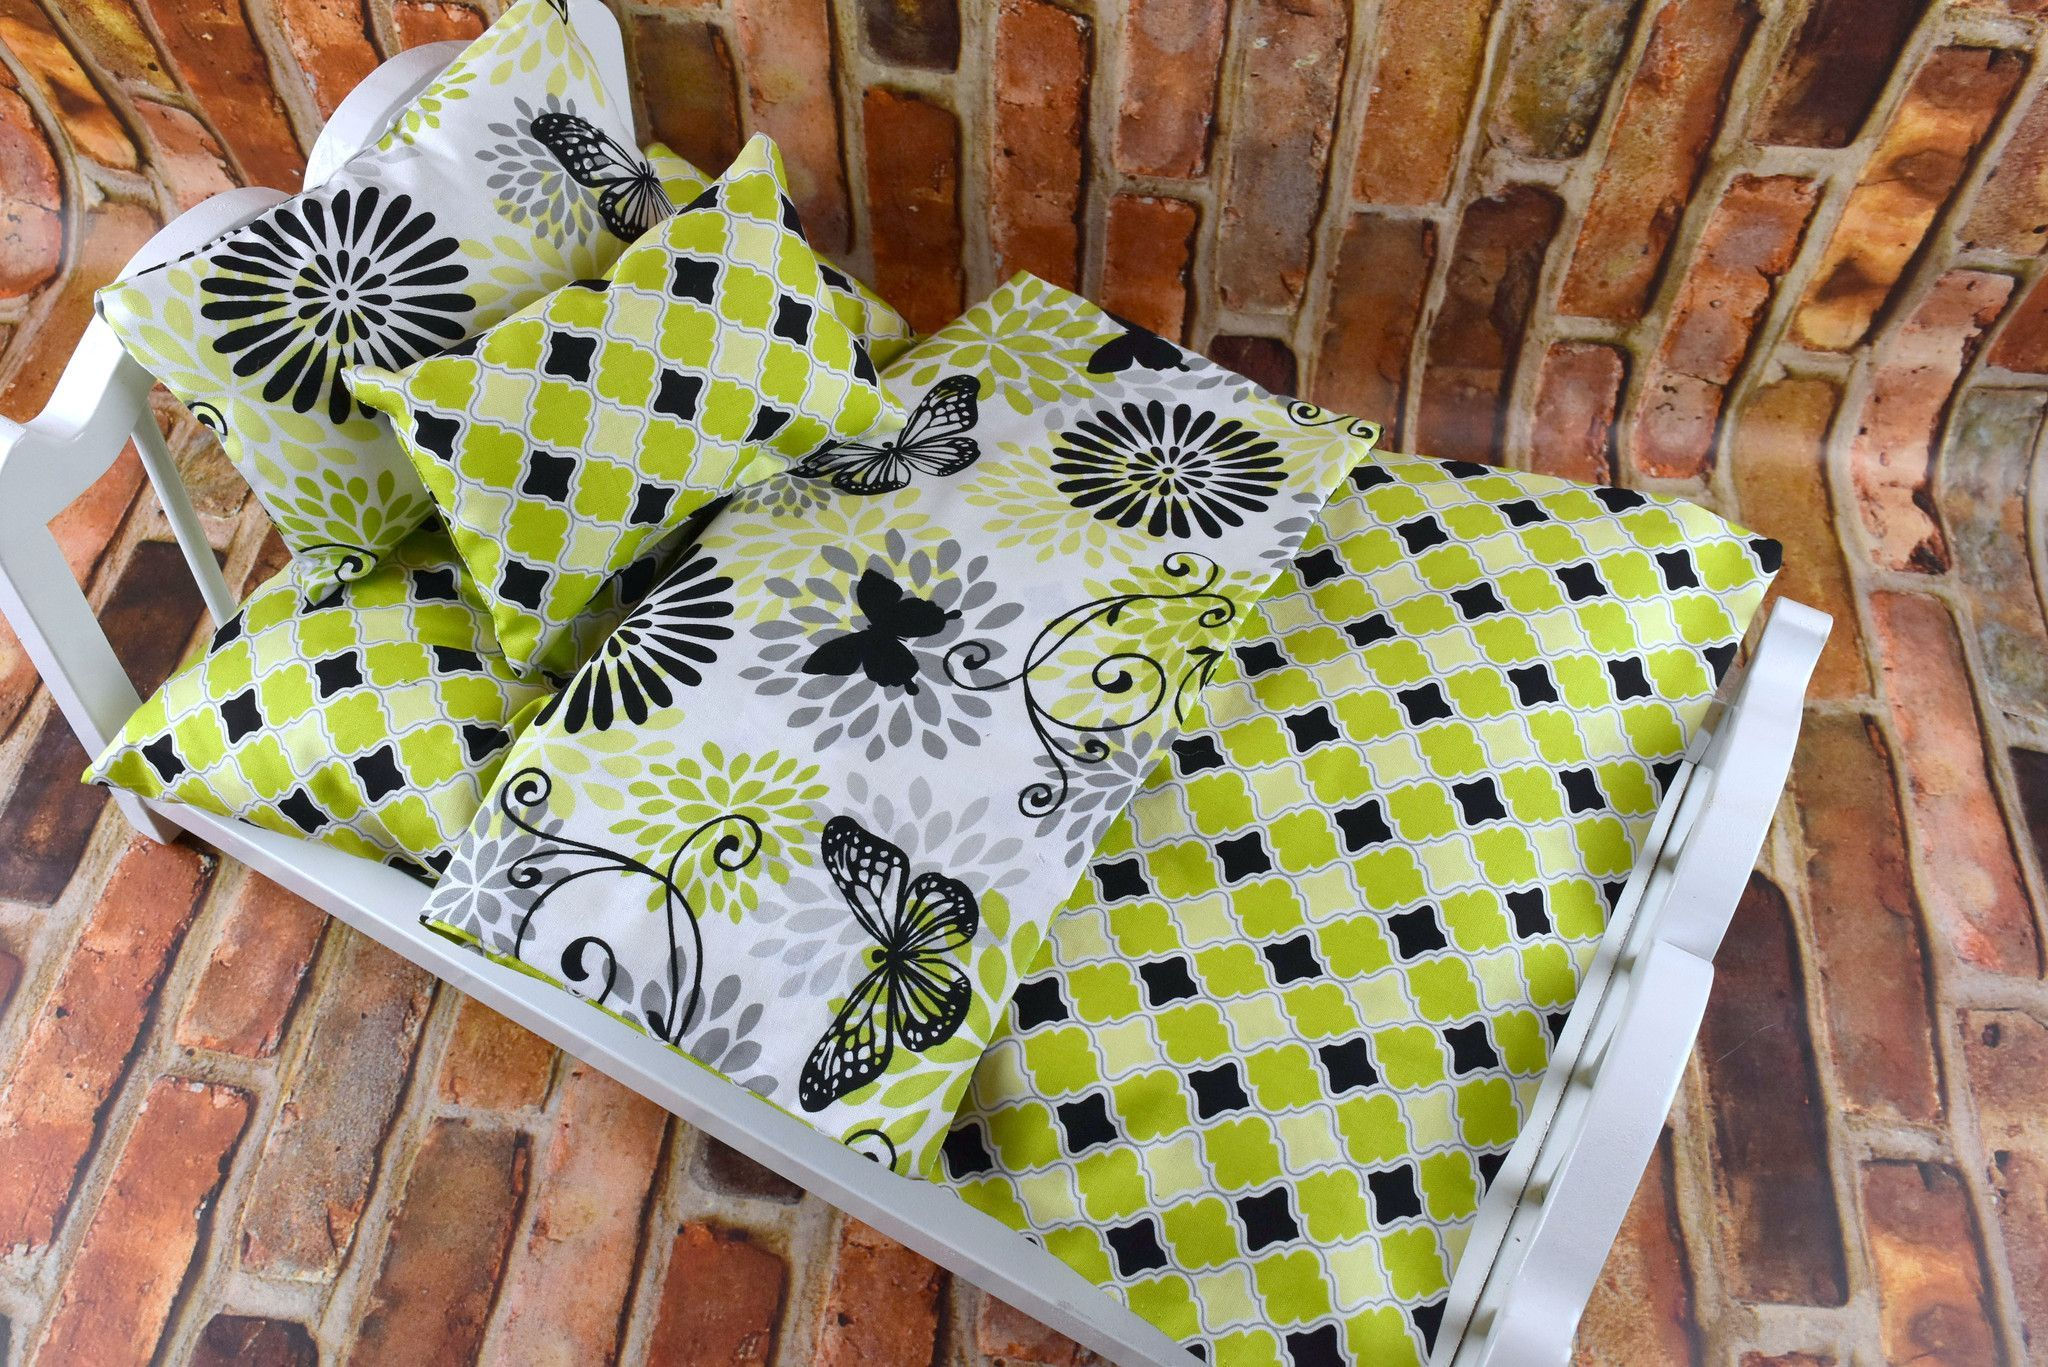 This colorful Butterfly pattern has so many options! Lively and colorful Lime Green and Black coordinating patterns make this a wonderful set for any doll bedding collection. Mattress is gently hand s